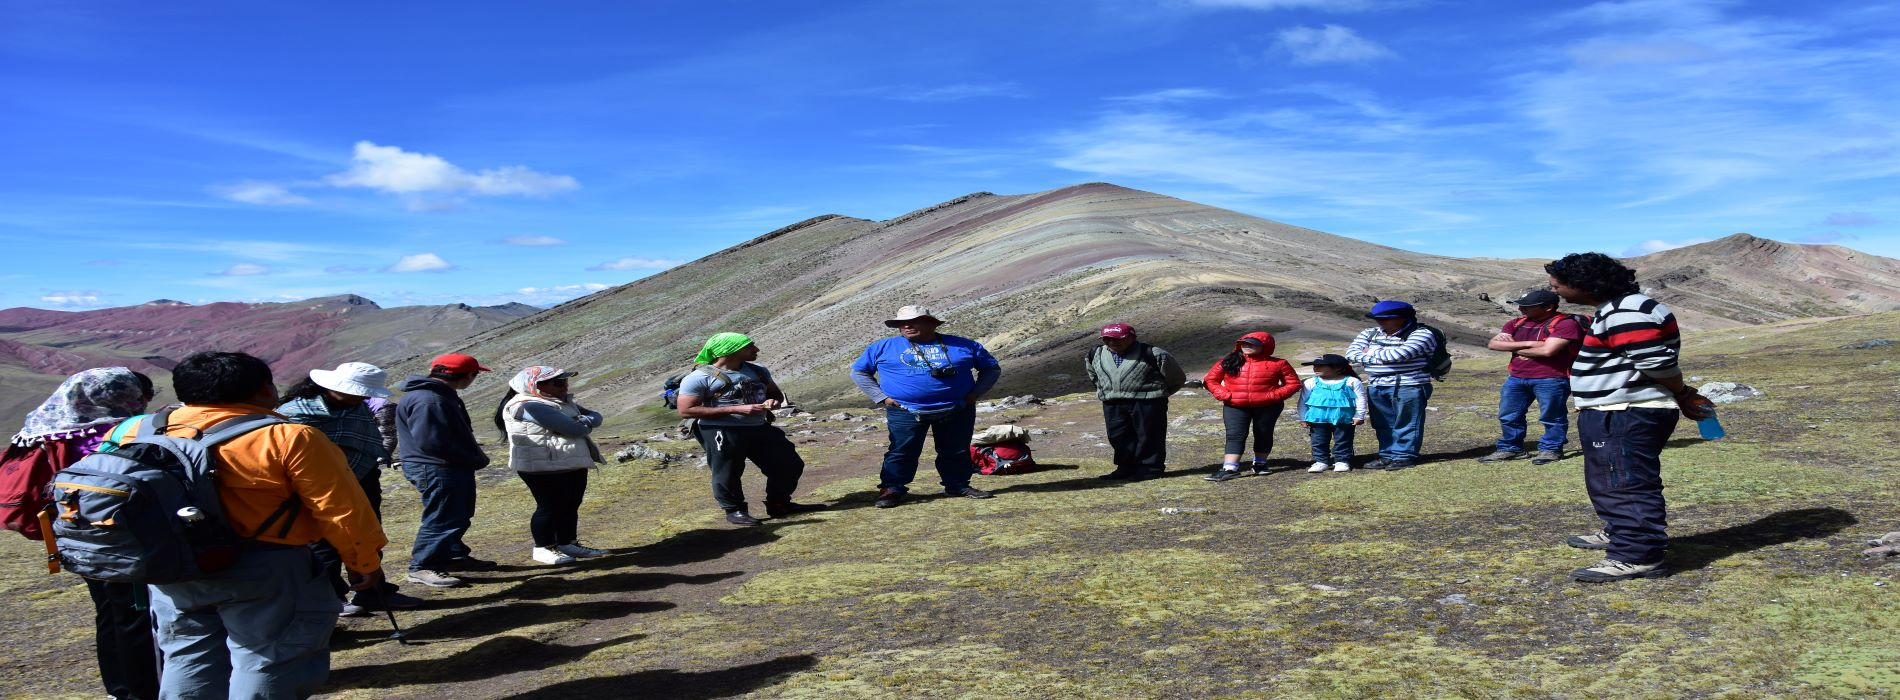 Culturandes Travel